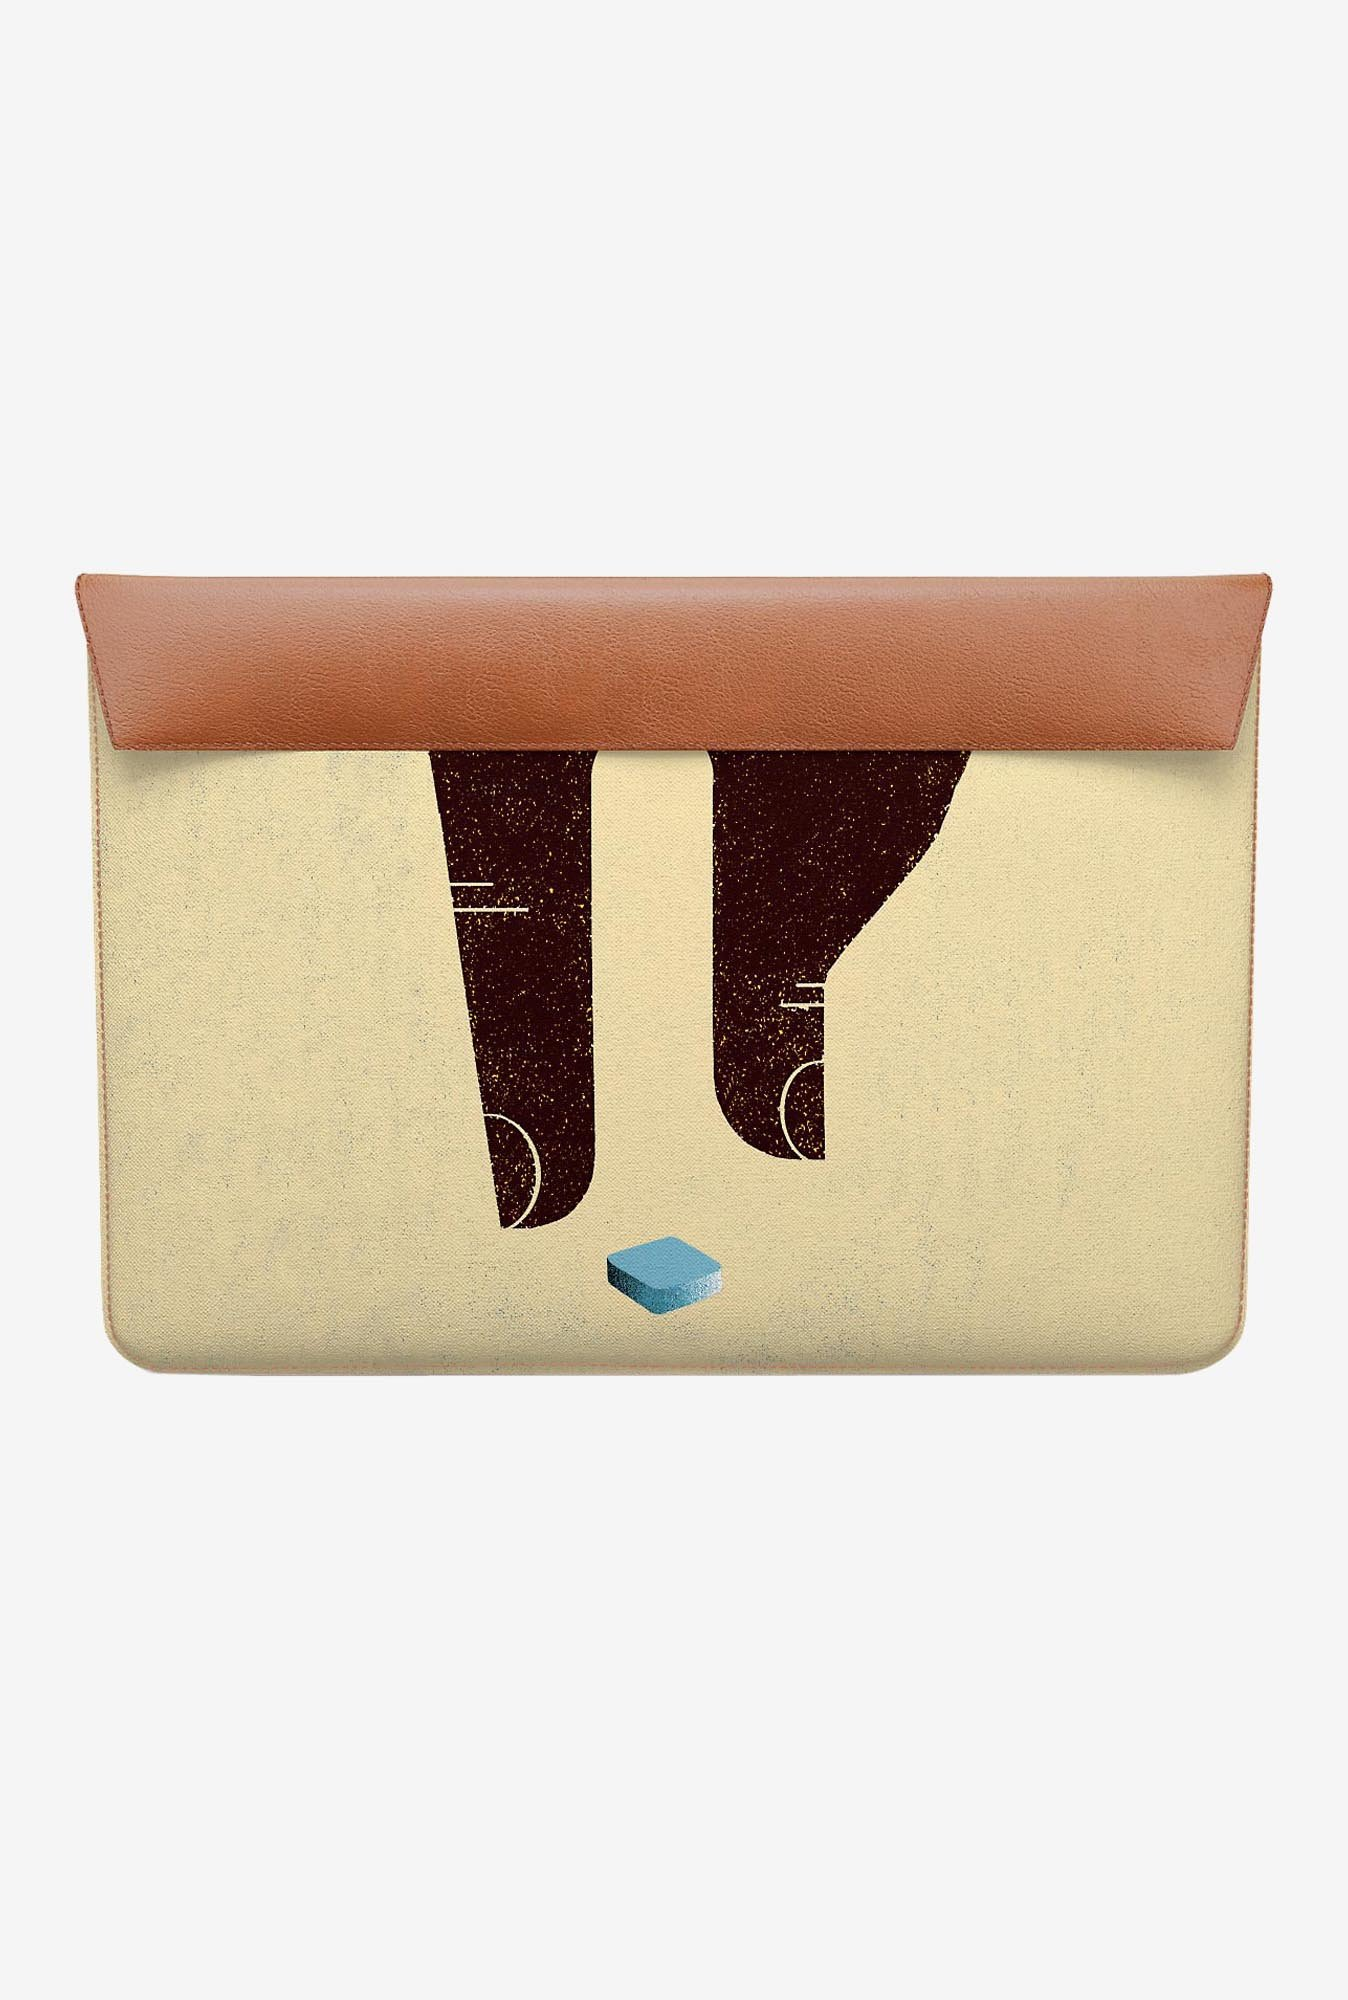 DailyObjects Enhancer MacBook Air 13 Envelope Sleeve